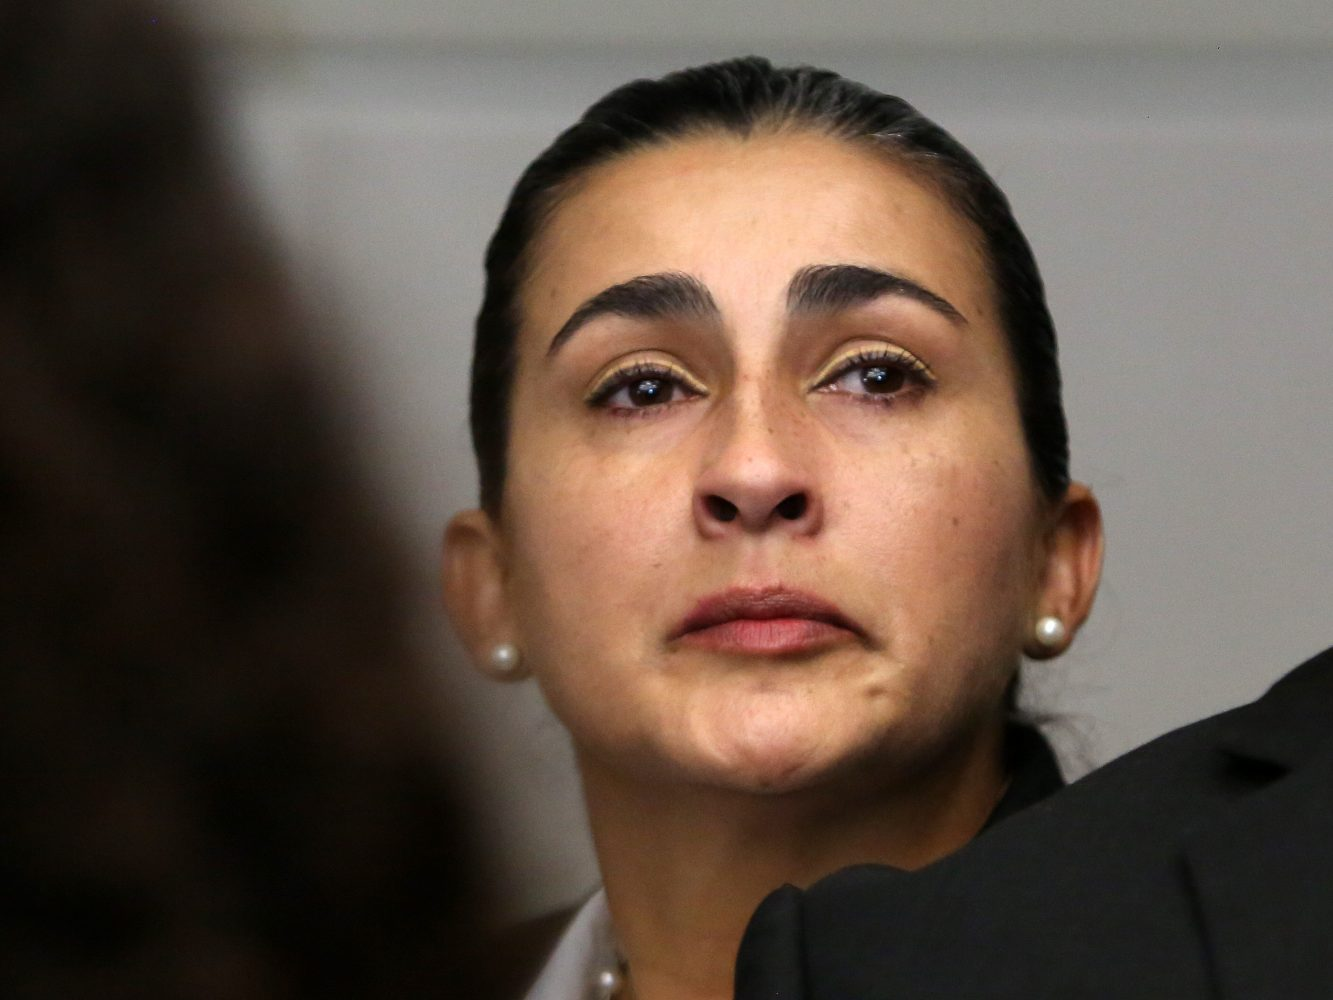 Claudia Aguilar listens as the prosecution gives opening statements in the case against Pedro Bravo in courtroom 1B of the Alachua County Criminal Justice Center Tuesday, August 5, 2014.  Bravo is accused of murdering her son.  (Doug Finger/The Gainesville Sun/Pool)